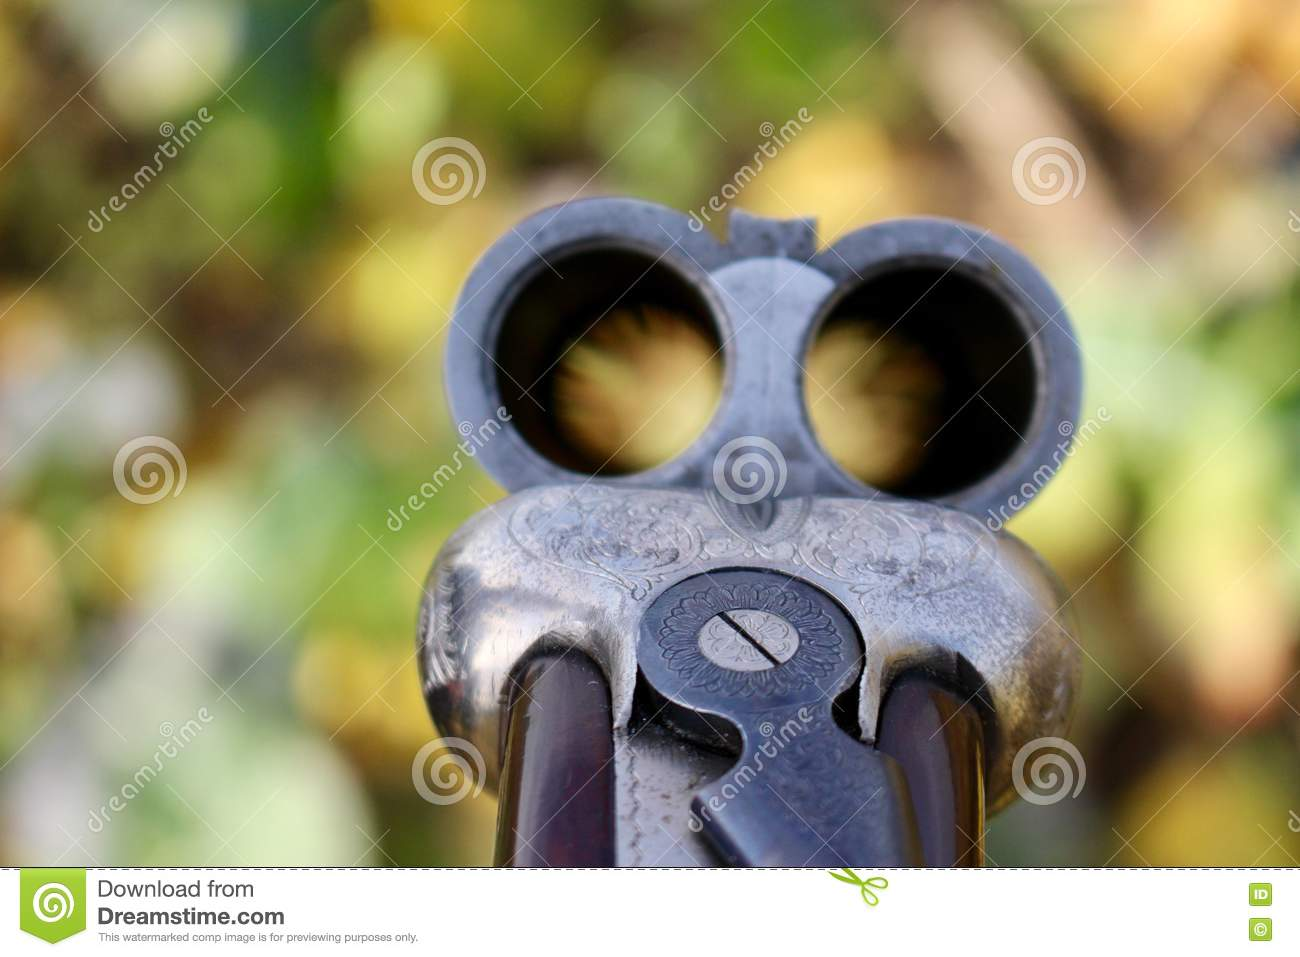 Shotgun barrel stock photo  Image of farm, looking, shoot